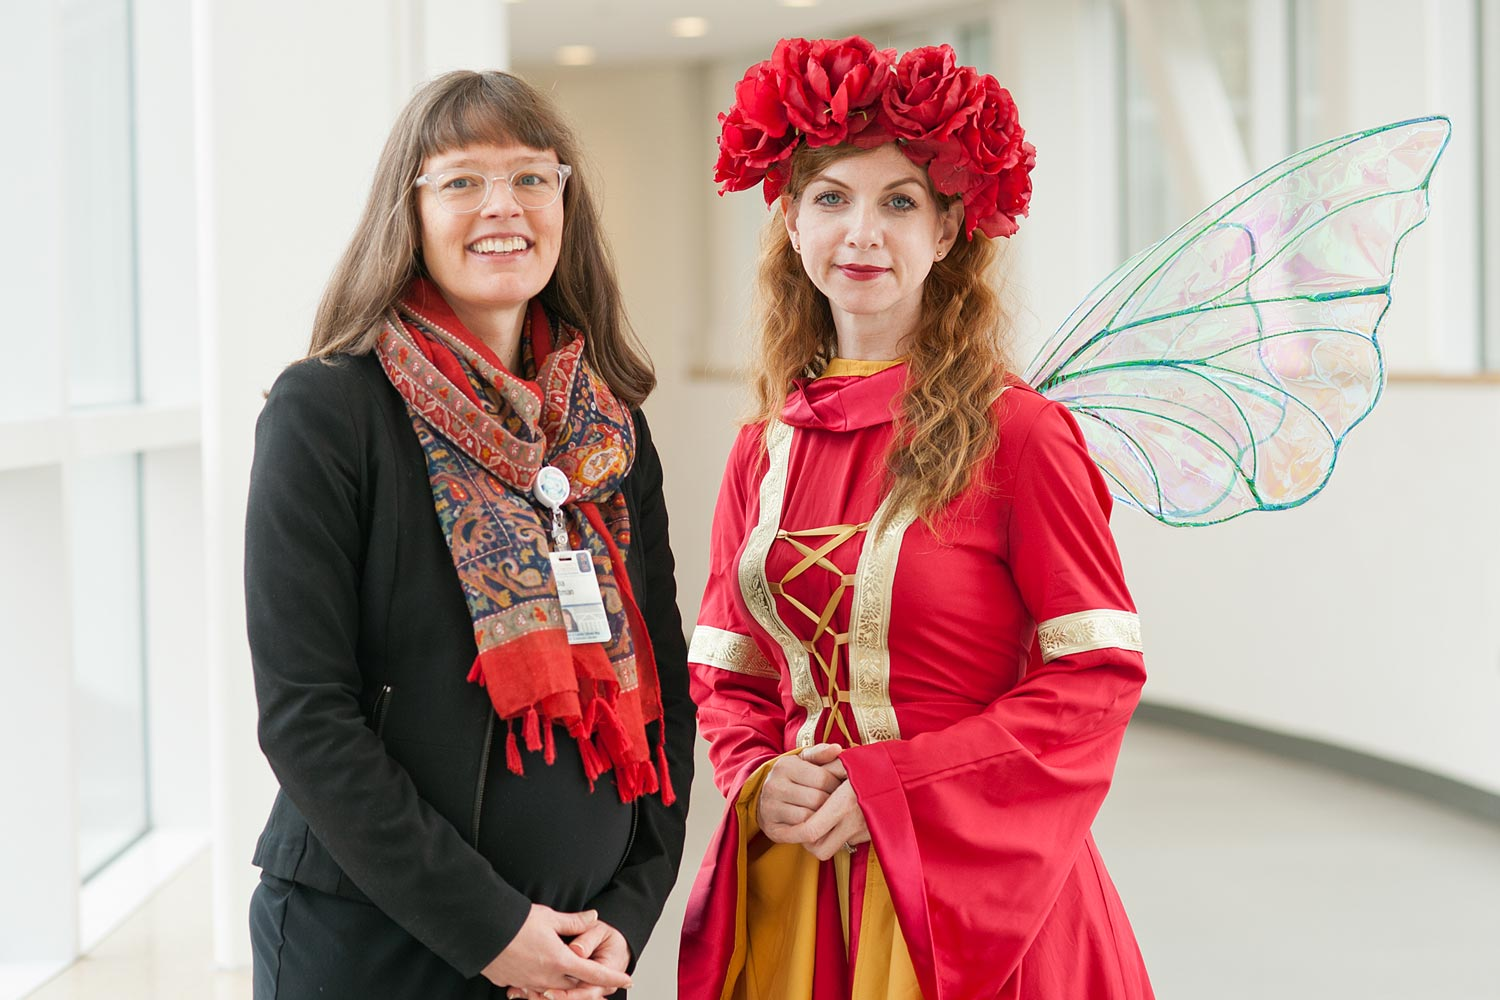 Lydia Witman, left, manages Patient & Family Library Services, an extension of the Claude Moore Health Sciences Library, and connected Briar the Book Faery with the hospital's Storytime Program.